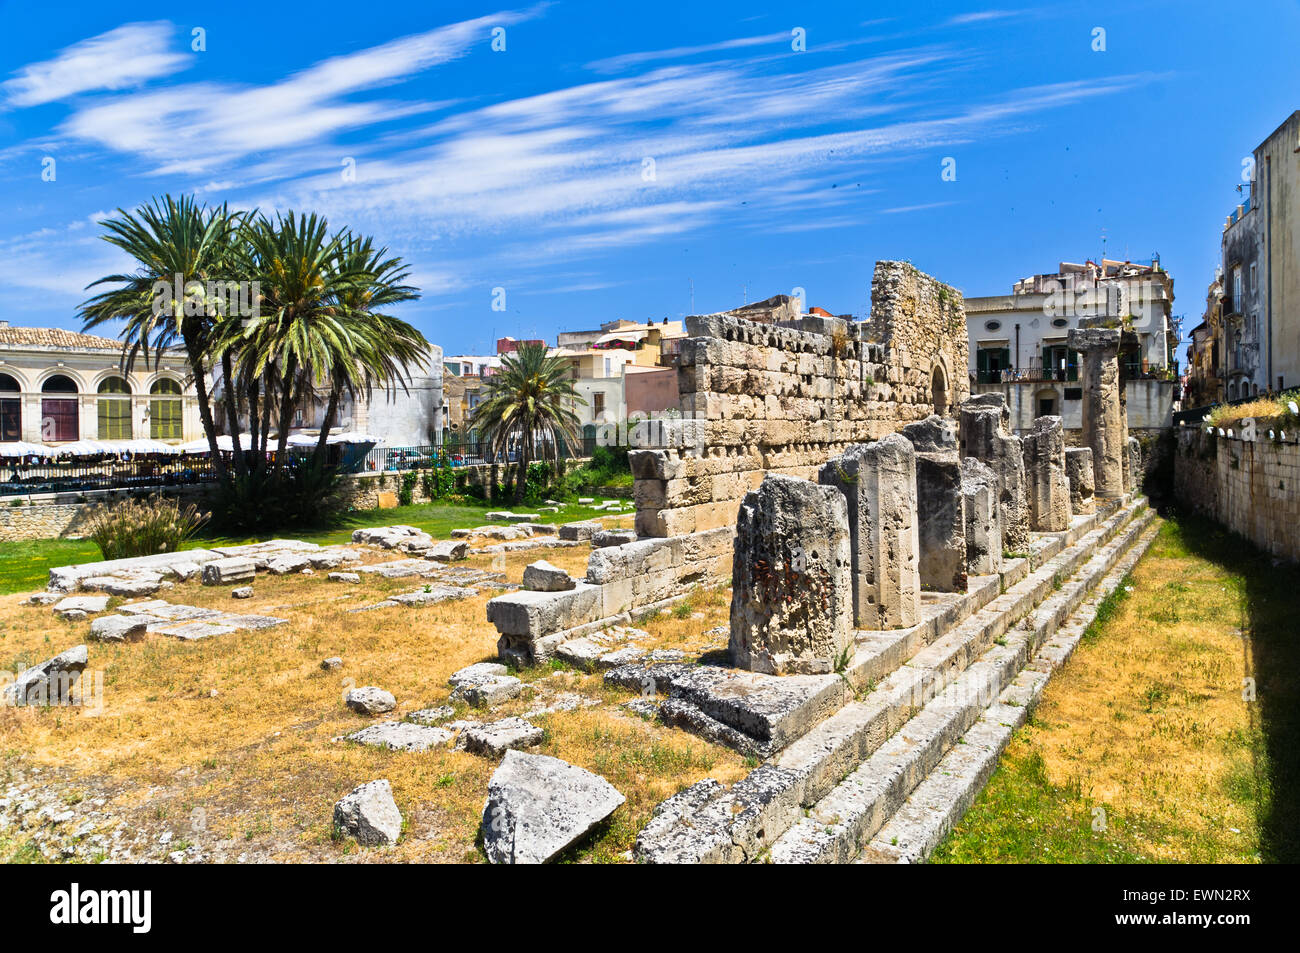 Temple of Apollo, ancient Greek monument in Ortigia, Syracuse, Sicily - Stock Image